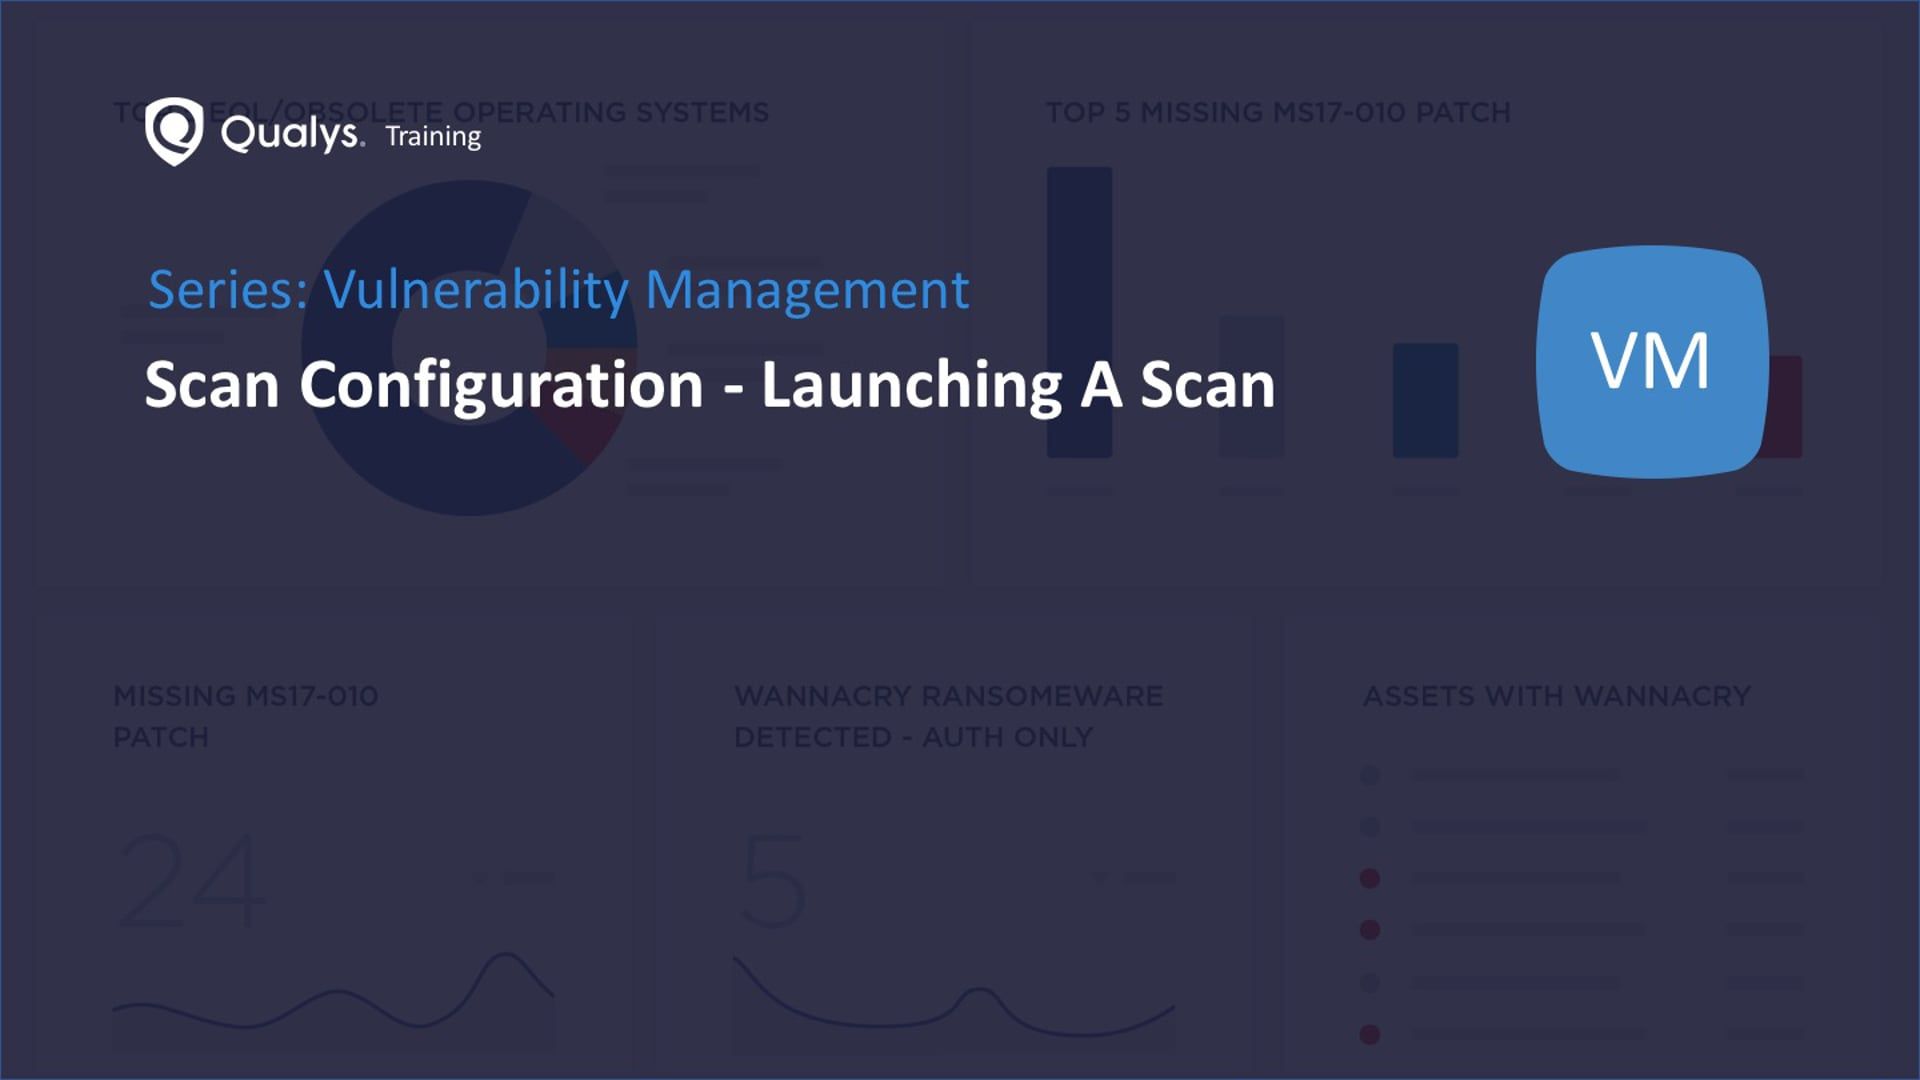 Scan Configuration - Launching A Scan